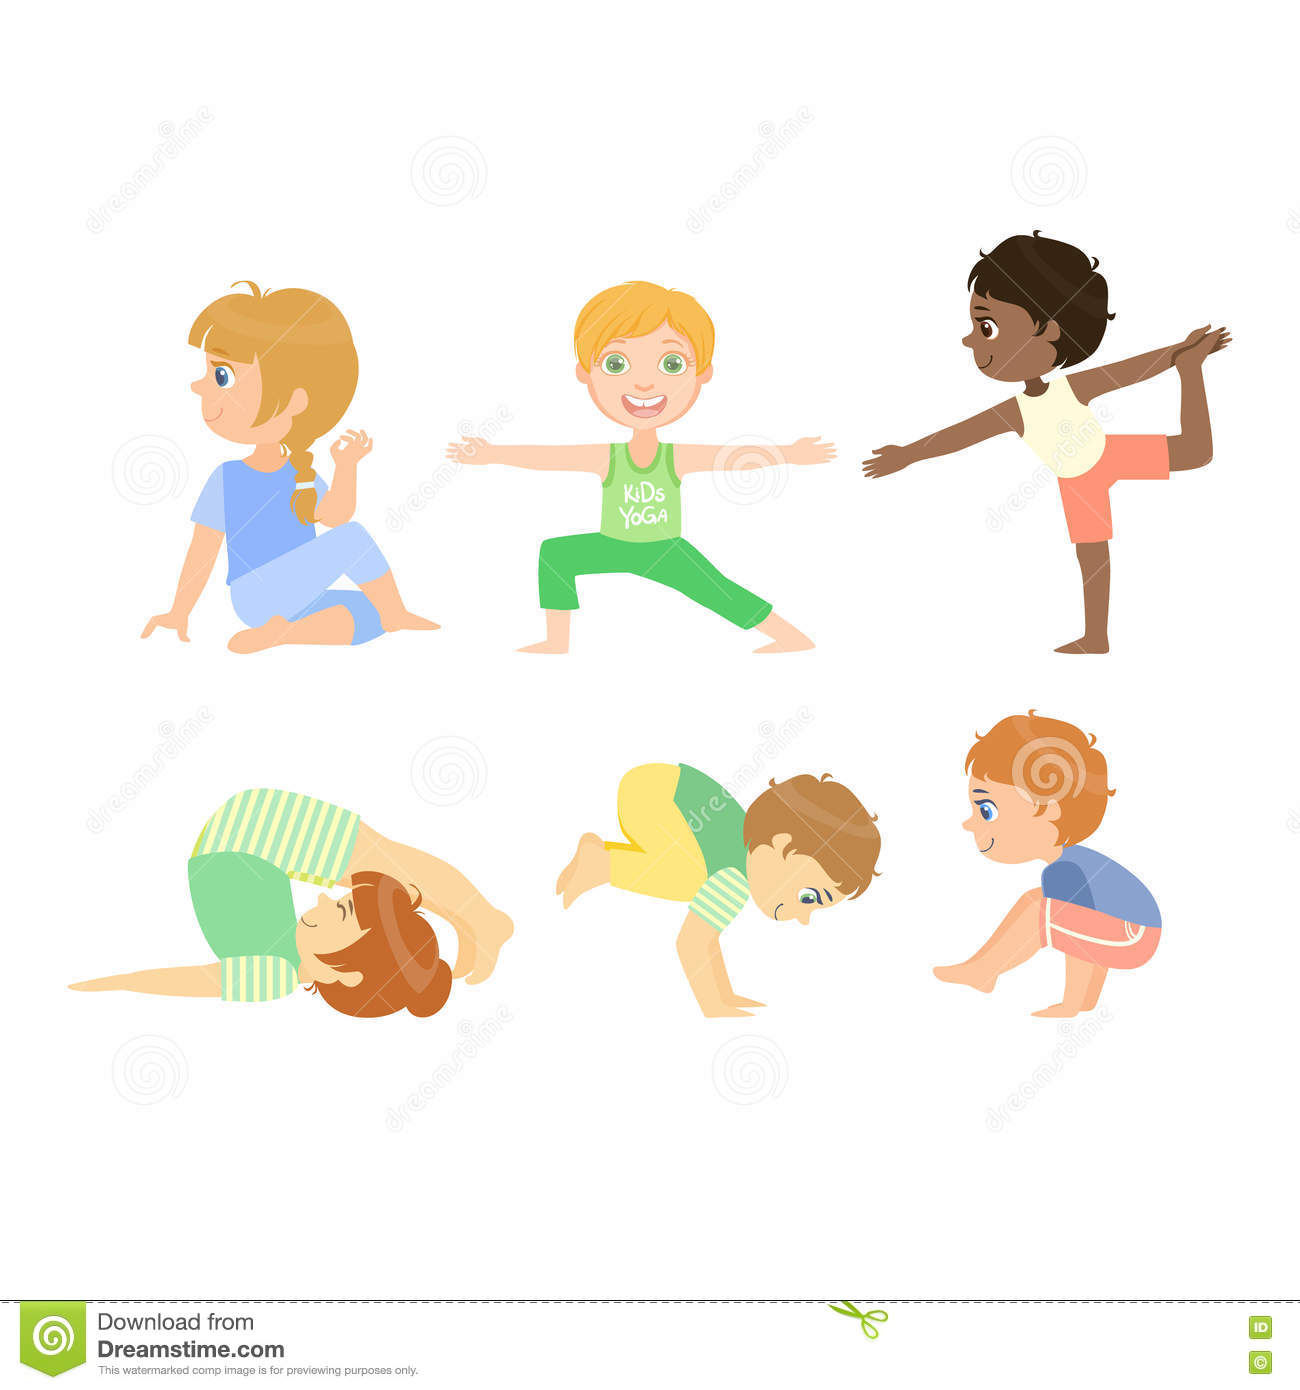 Kids Doing Advanced Yoga Poses Stock Vector Illustration Of Children Exercise 72200452